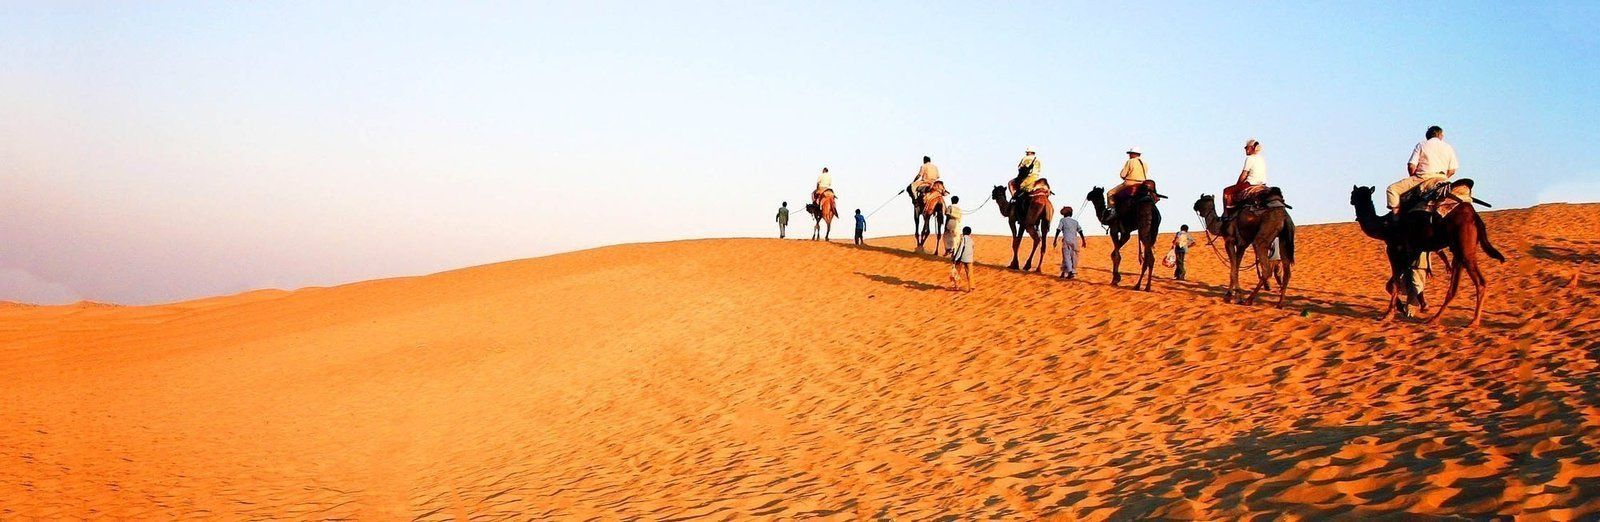 Let S Travel Thar Desert And Jaisalmer City In India